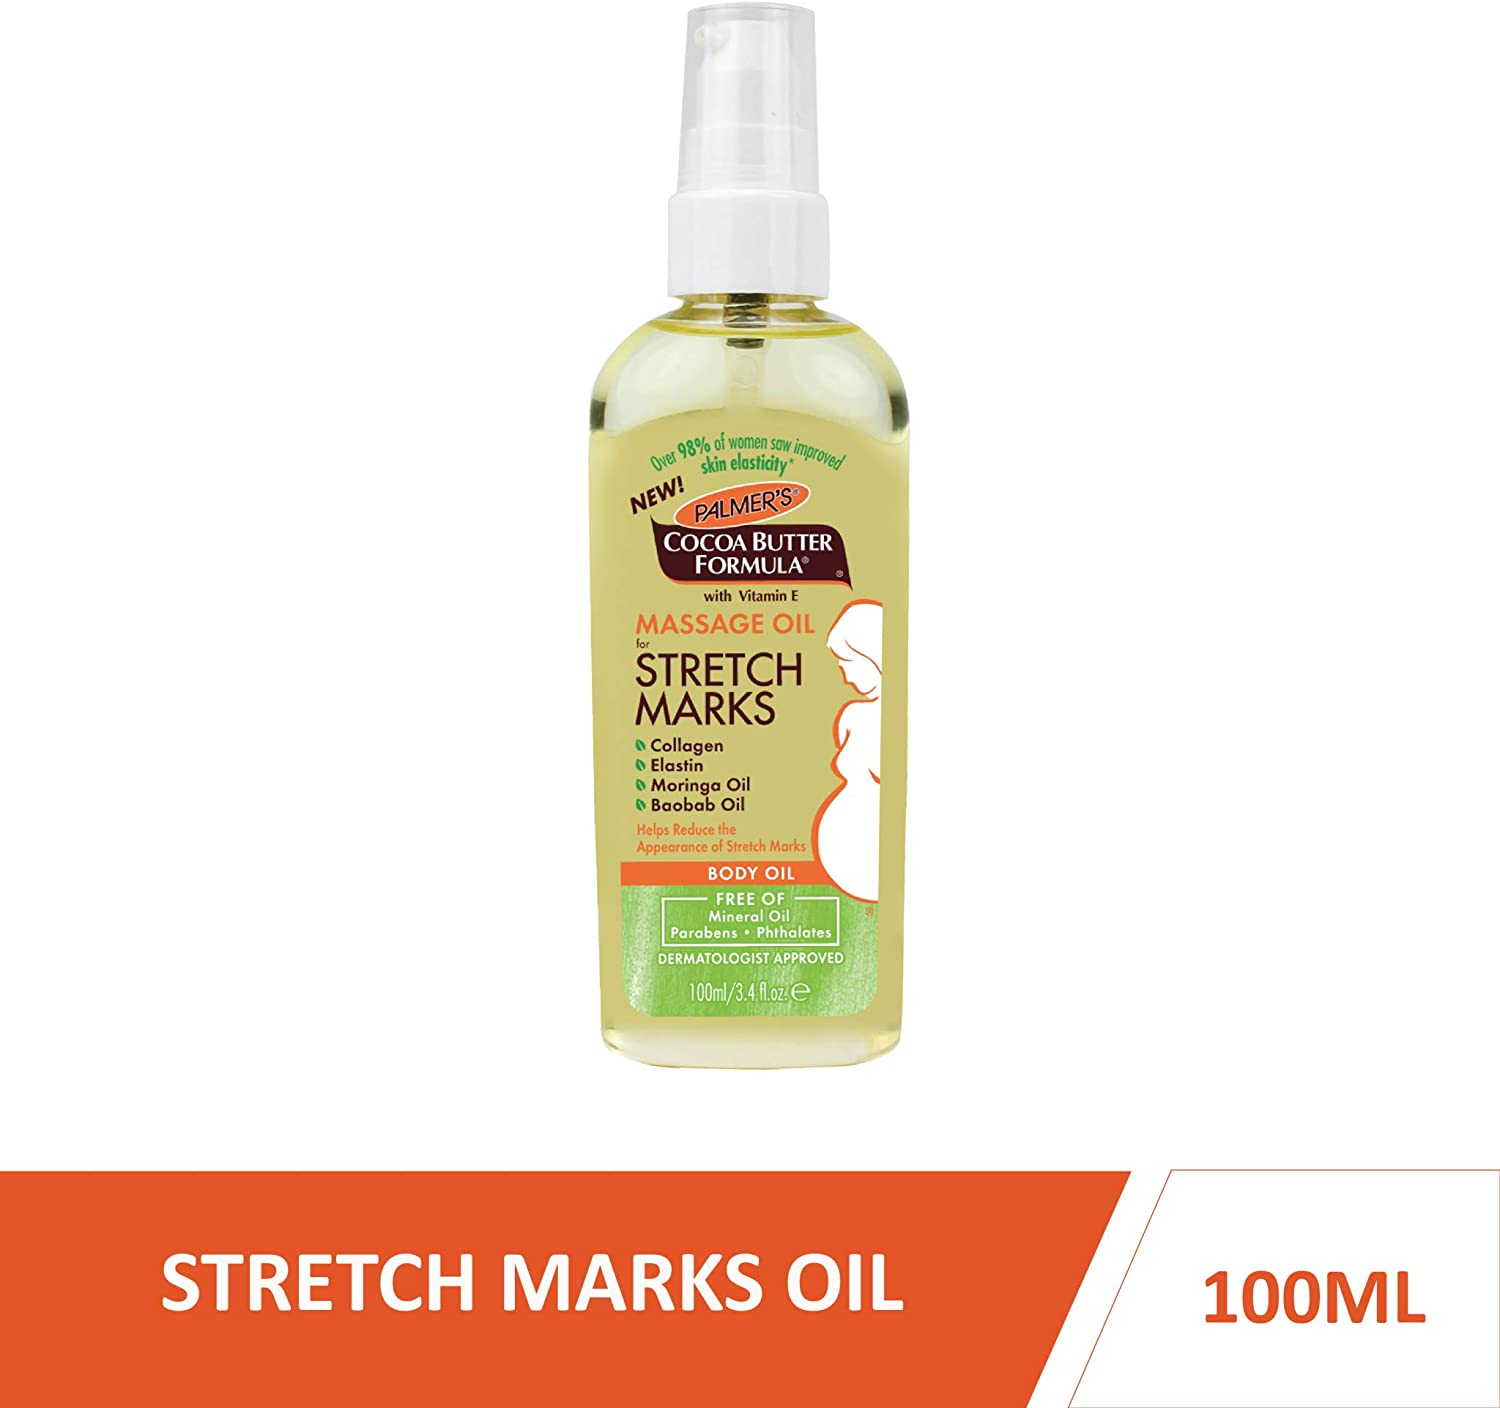 PALMER'S Cocoa Butter Formula Massage Oil for Stretch Marks, 100ml